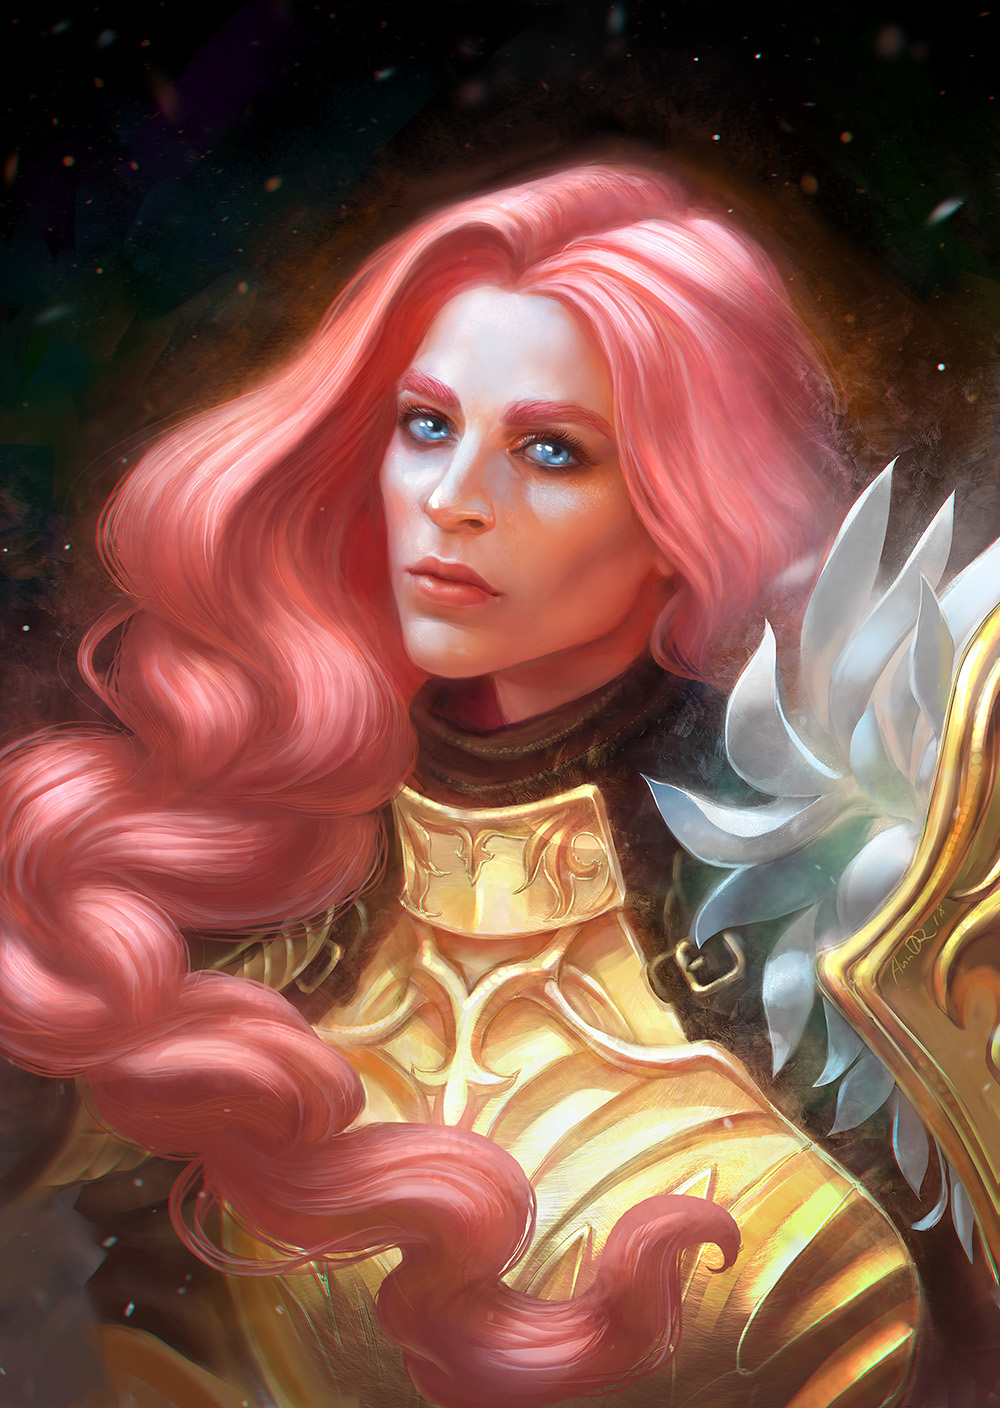 fantasy digital art valkyrie anndr kusuriuri